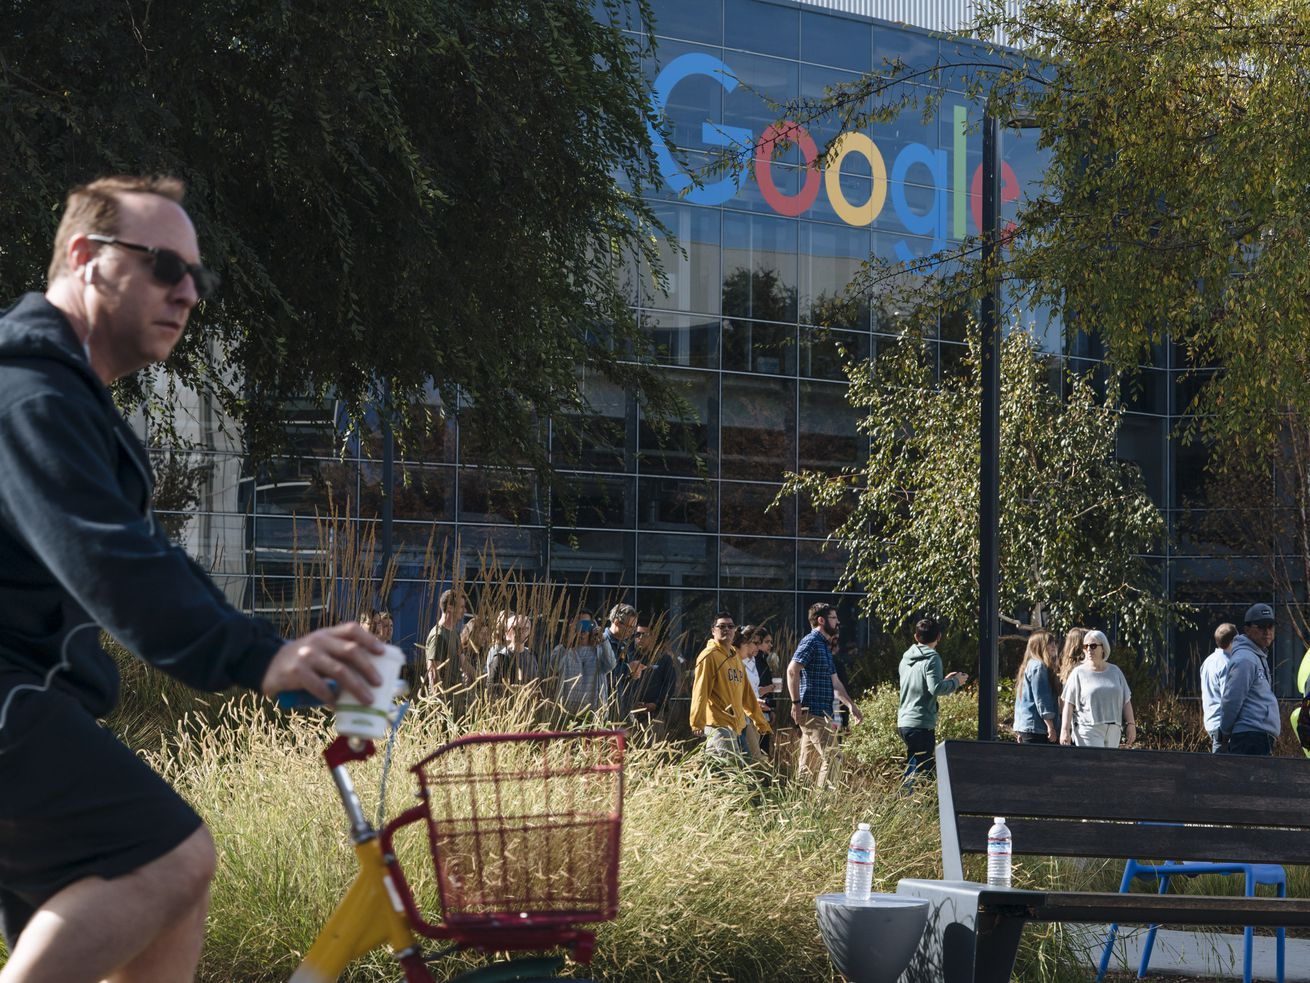 Google employees staged a walkout to protest the company's actions on sexual harassment.